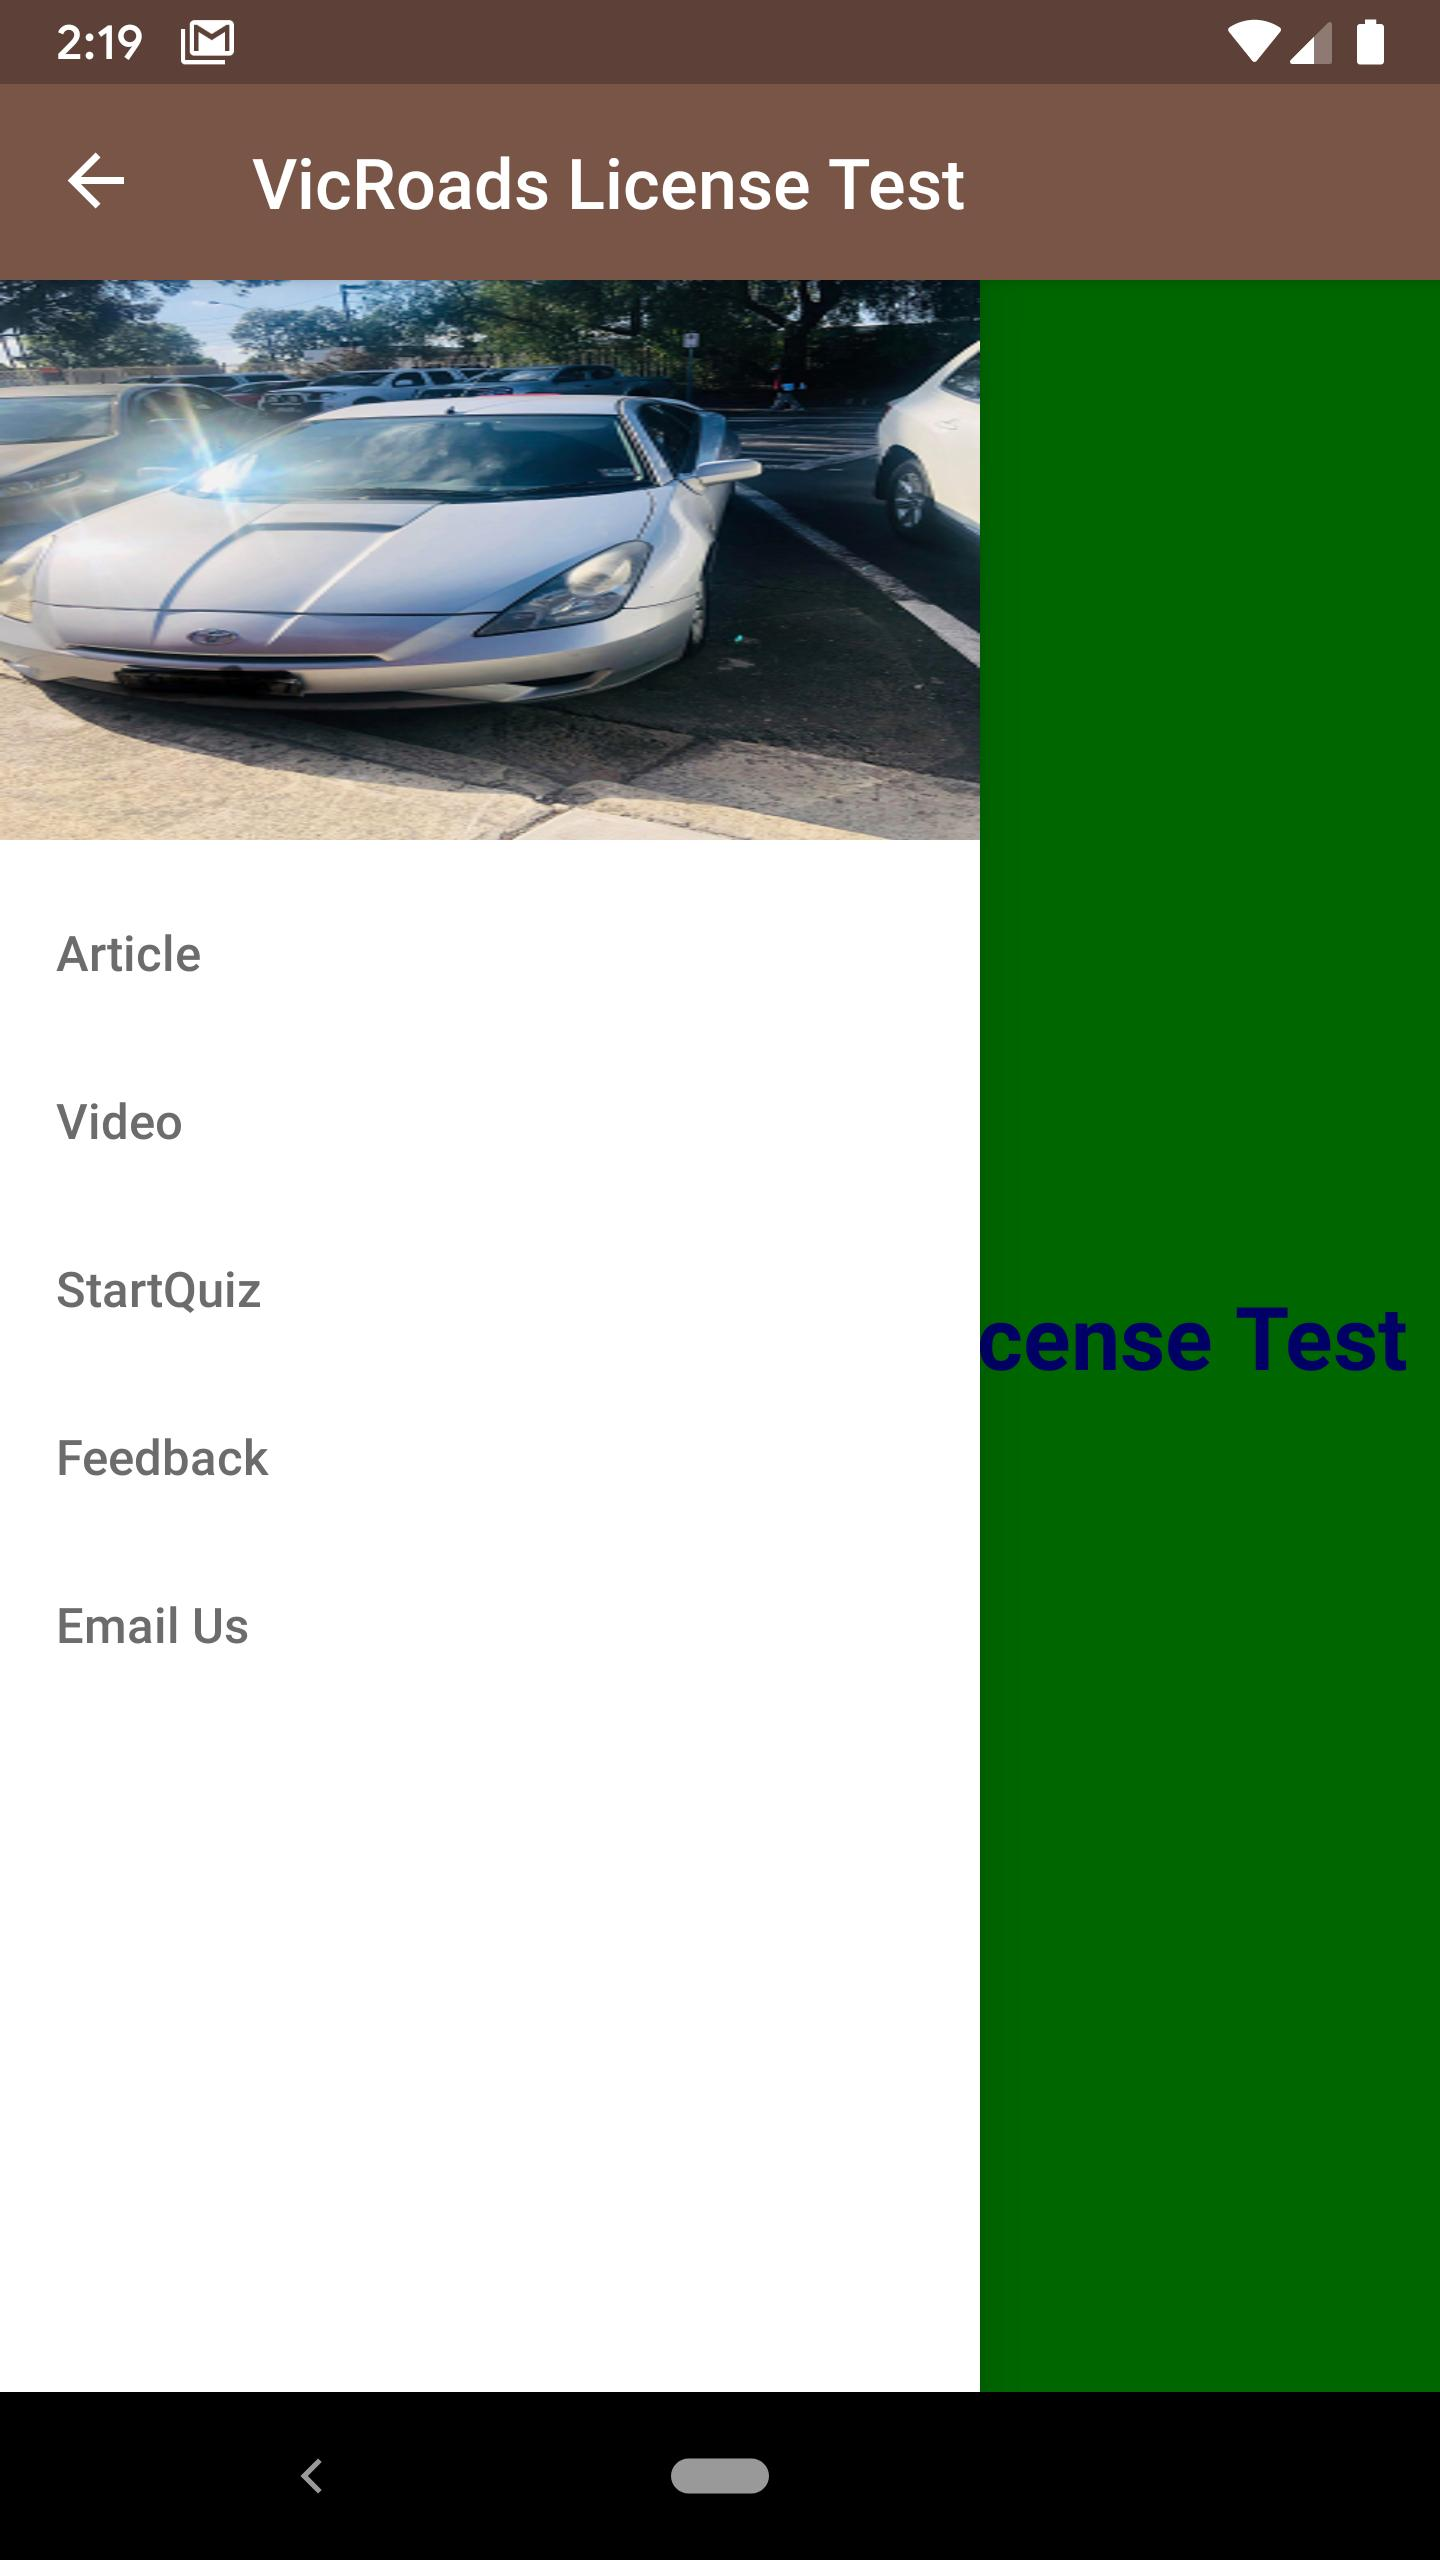 VicRoads License Test for Android - APK Download